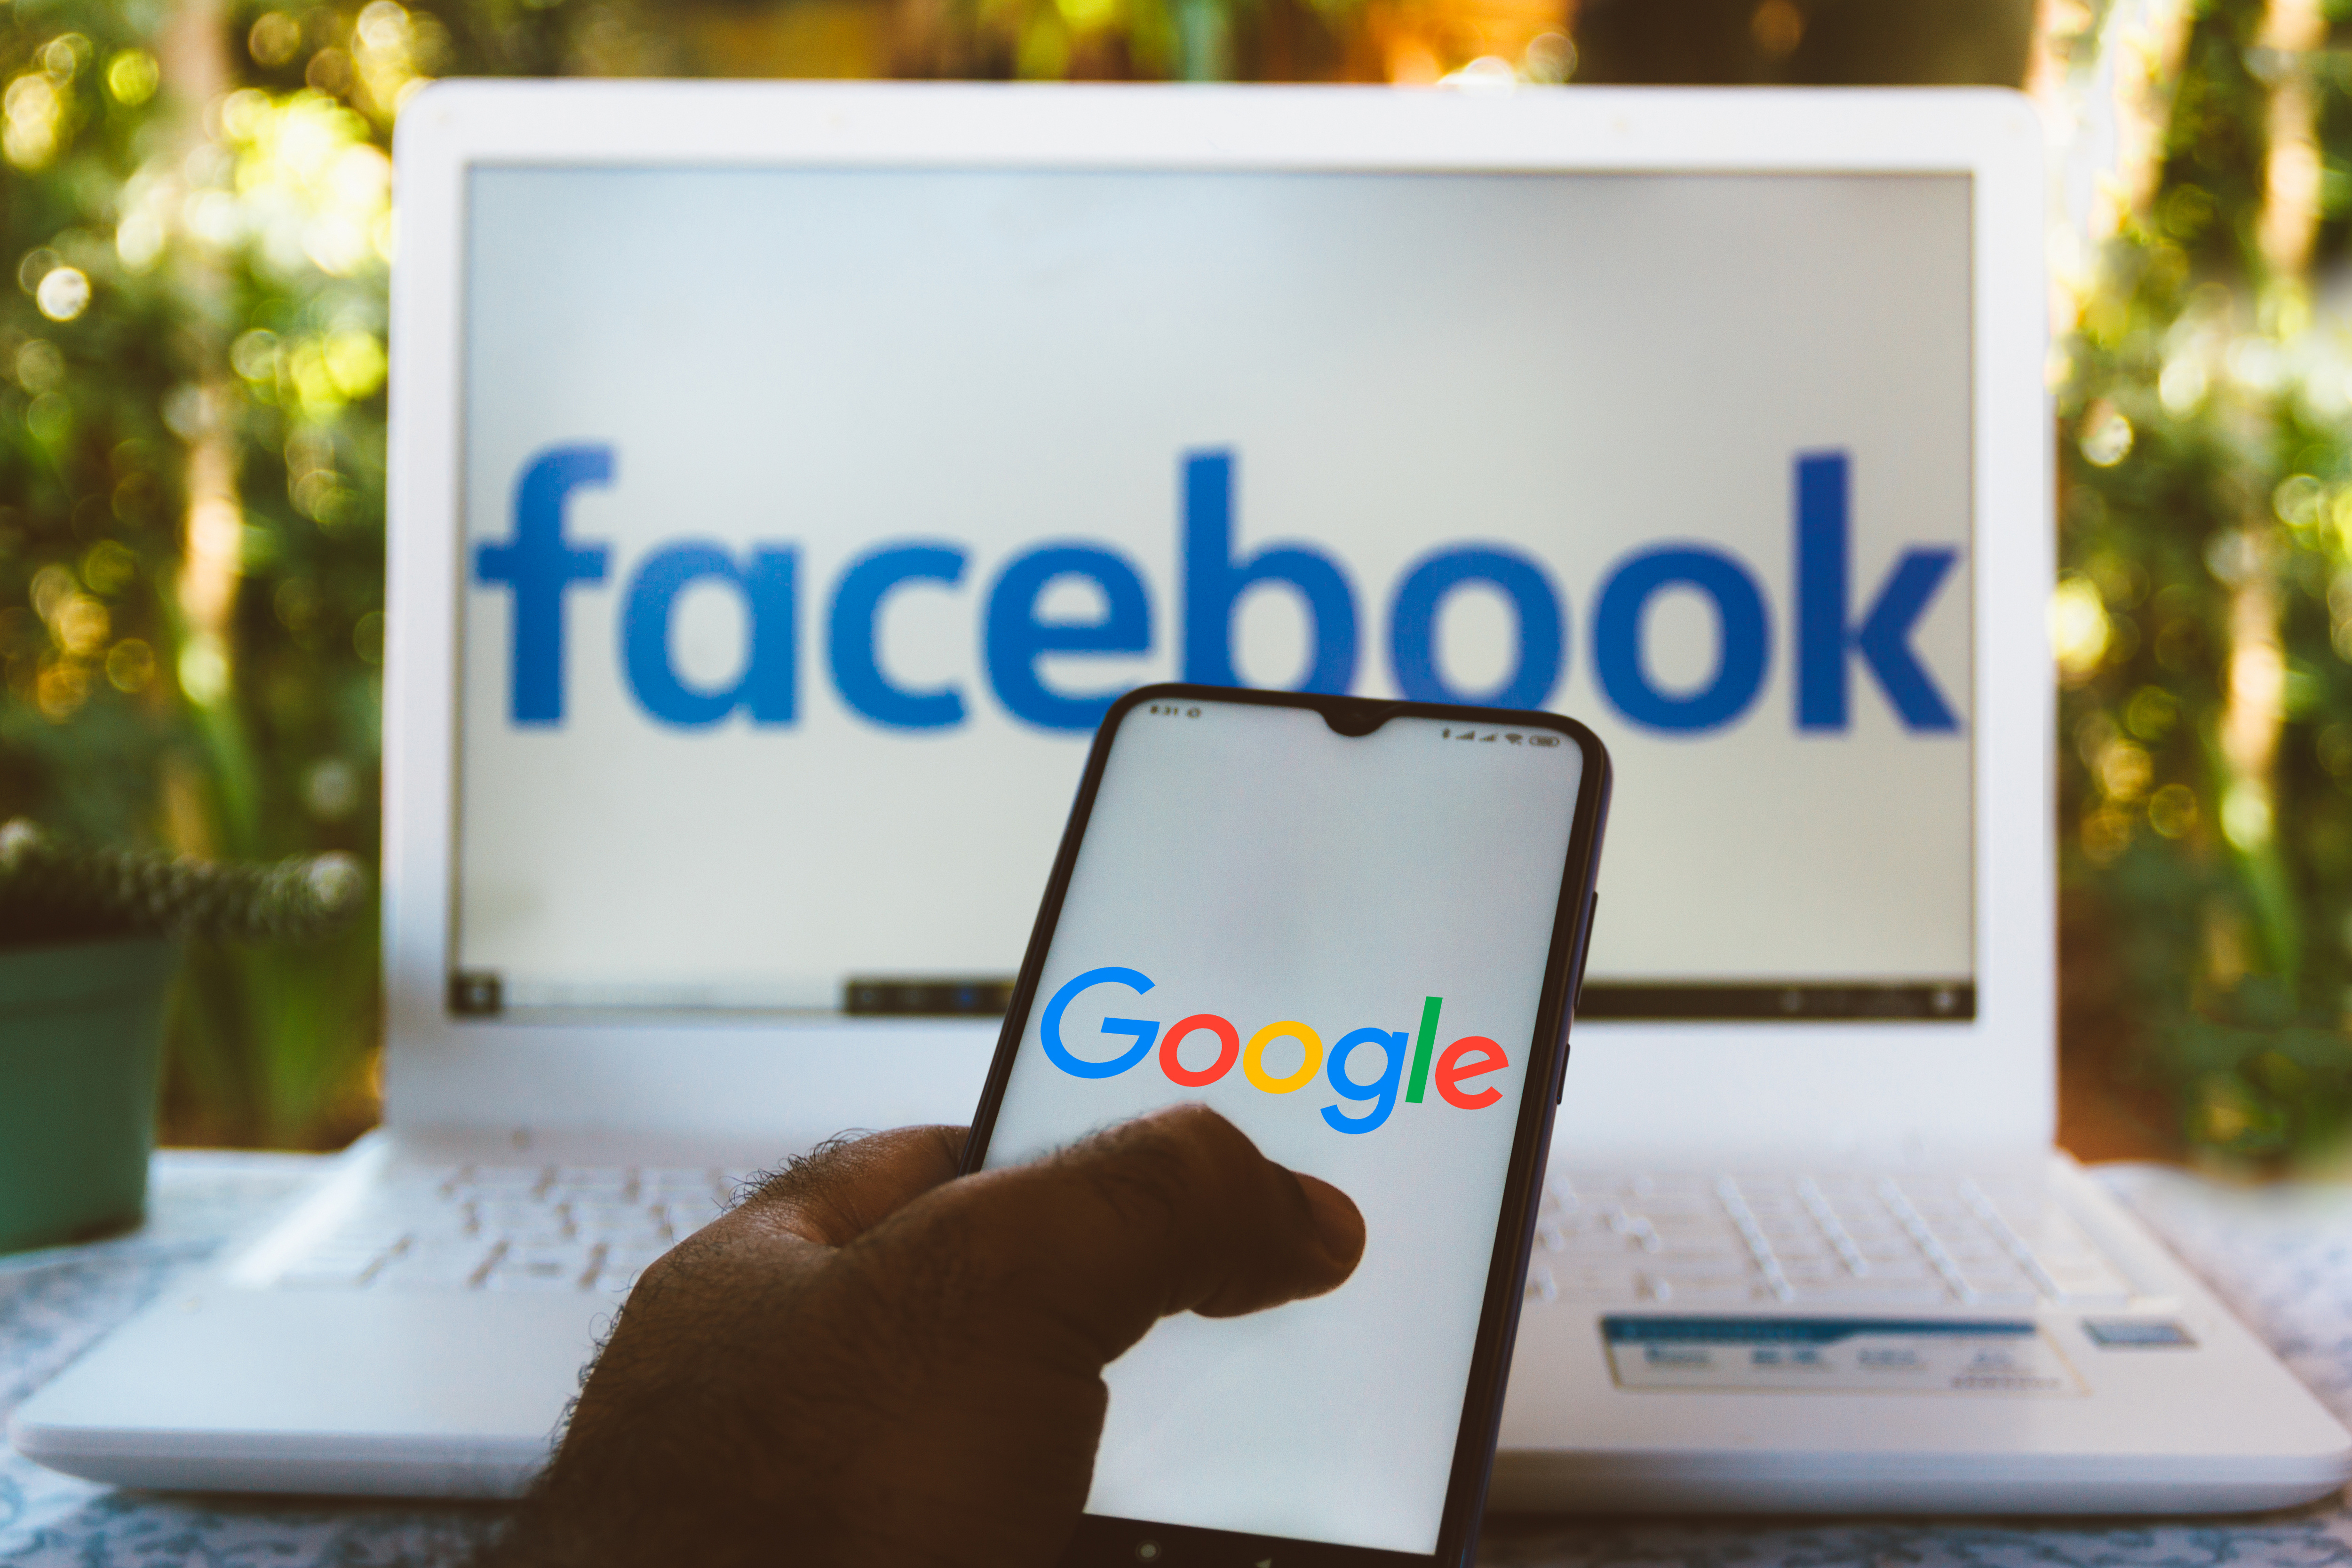 Facebook and Google allegedly cut a deal that reduced ad competition